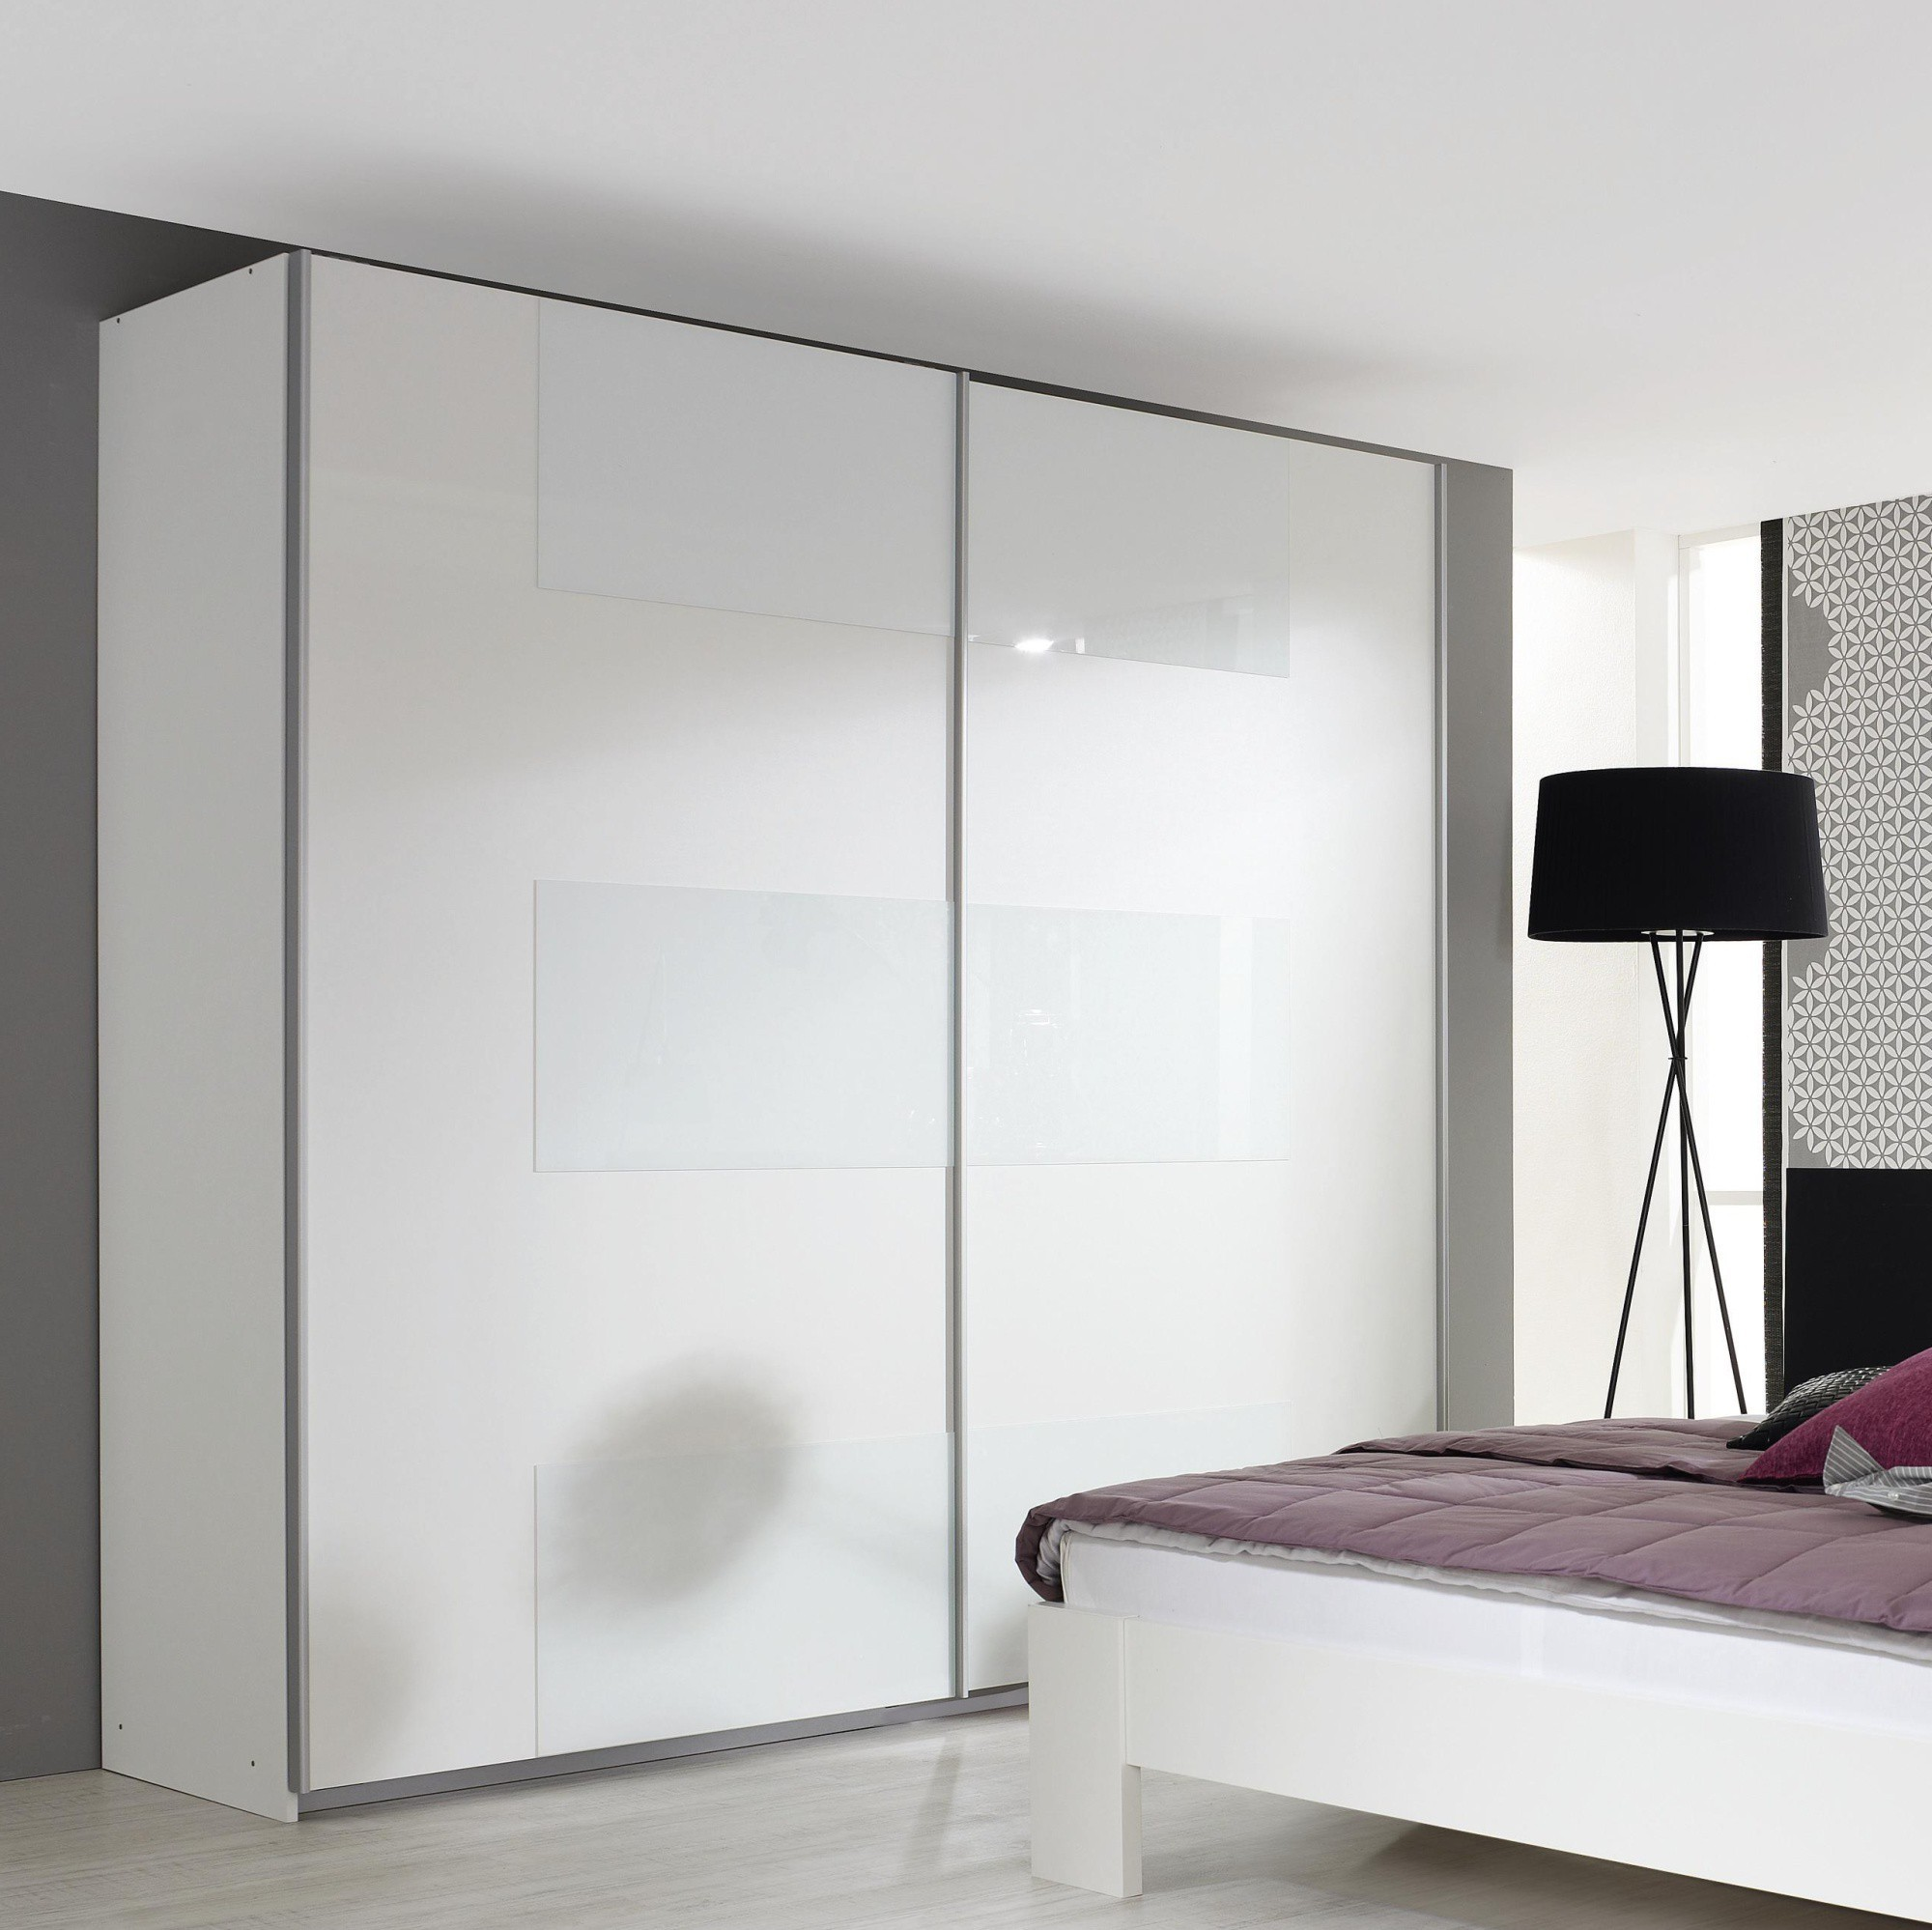 armoire porte coulissante miroir blanche armoire id es. Black Bedroom Furniture Sets. Home Design Ideas